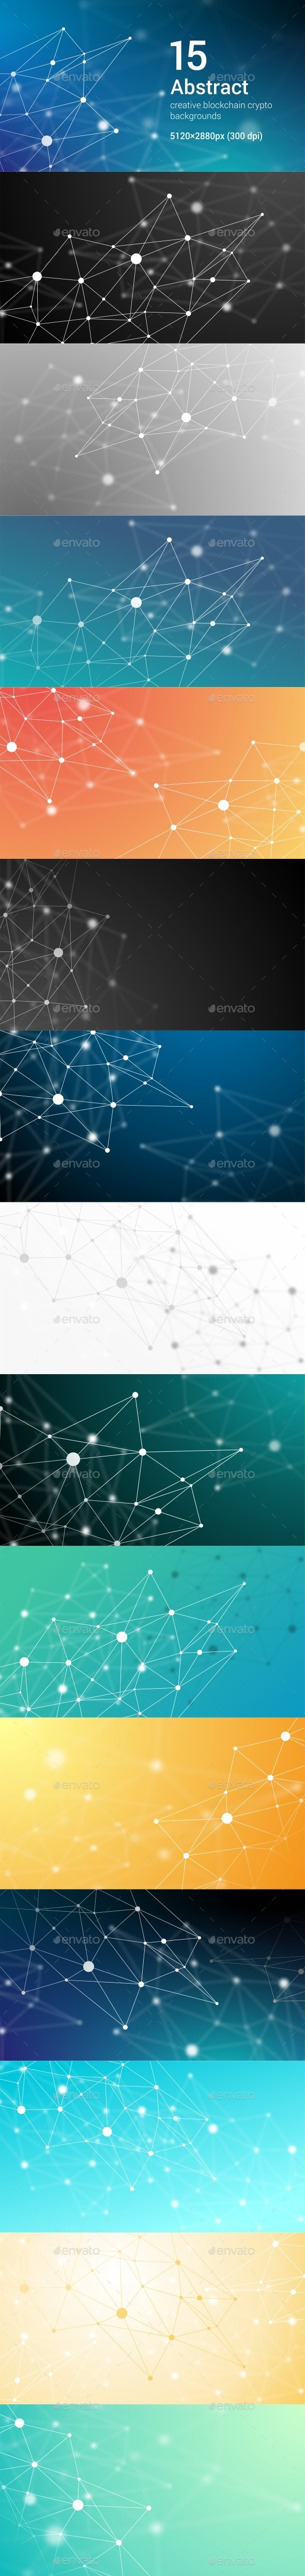 15 Abstract Futuristic Crypto Blockchain Backgrounds. White Dots and Shapes in Triangles Set 1 - Abstract Backgrounds